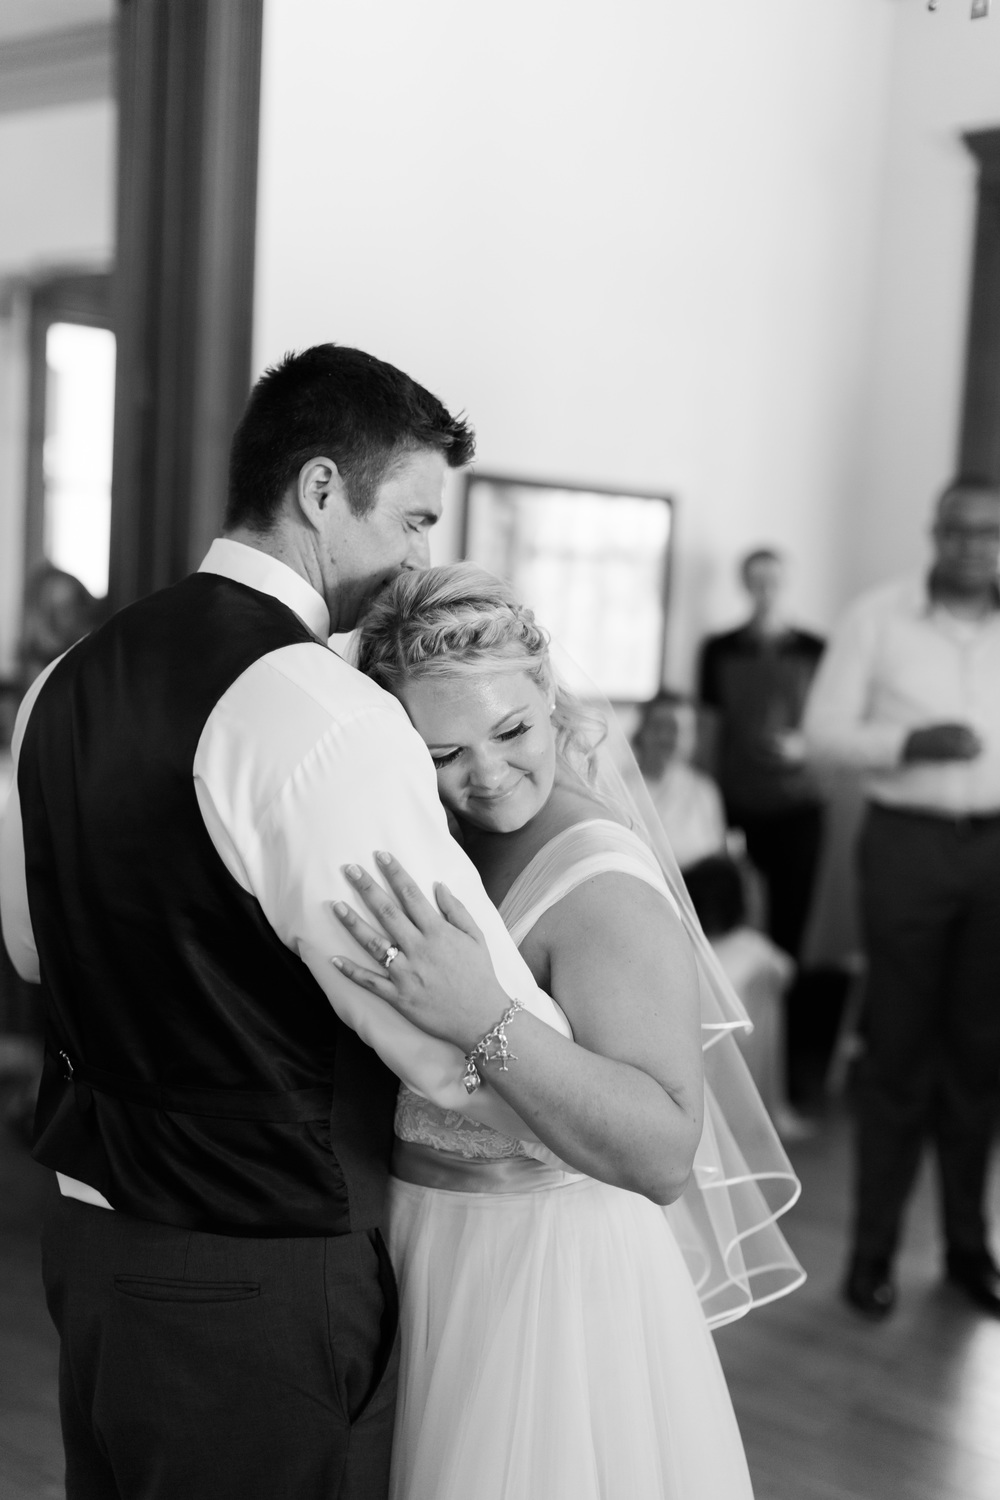 southern-inspired-wedding-at-ravenswood-historic-site-5337.jpg